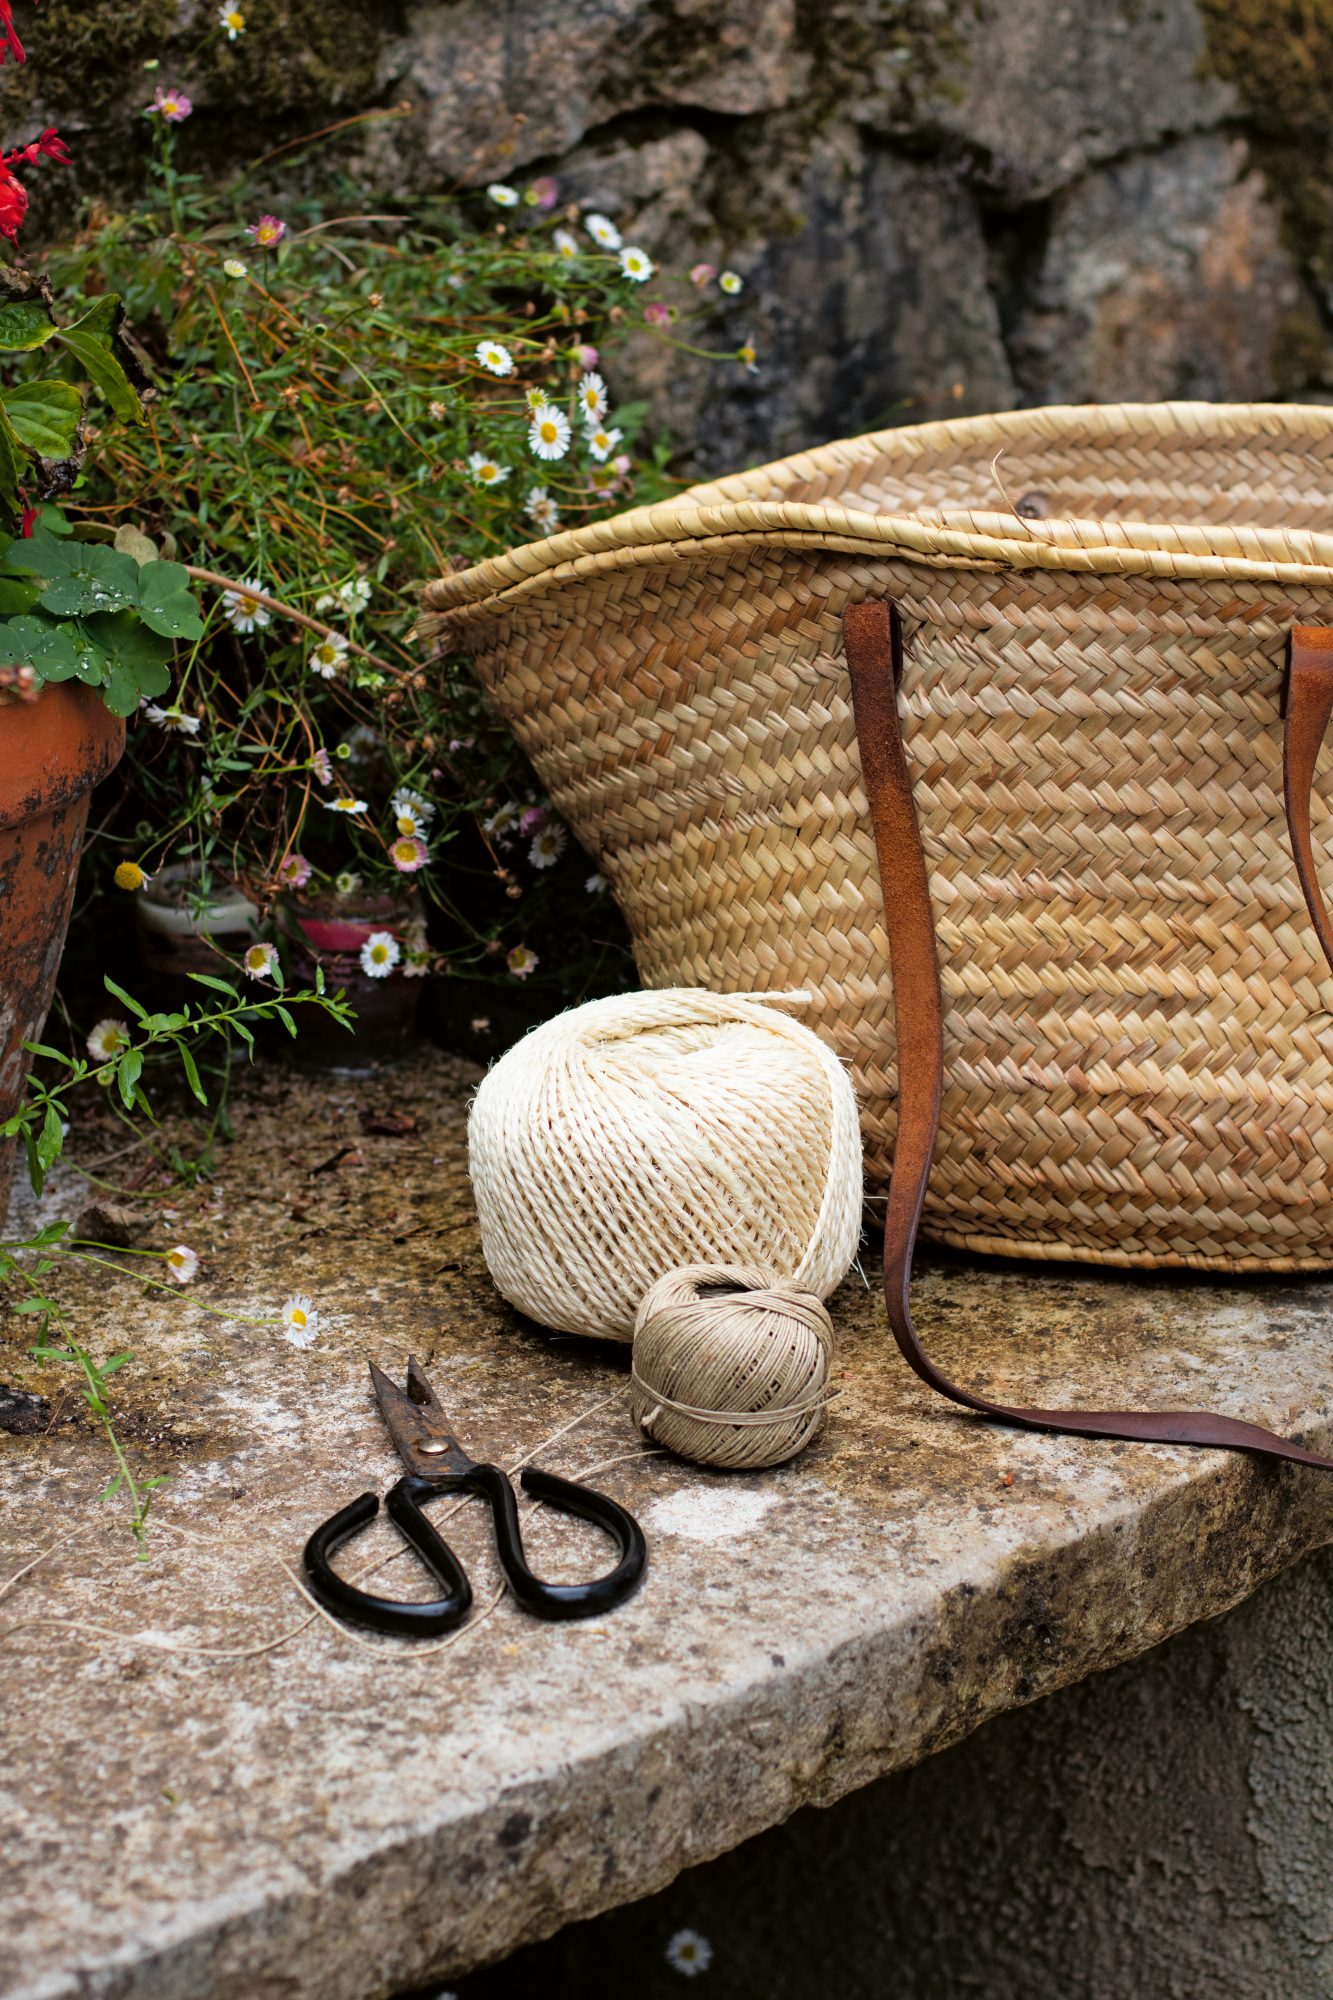 foraging tolls and basket